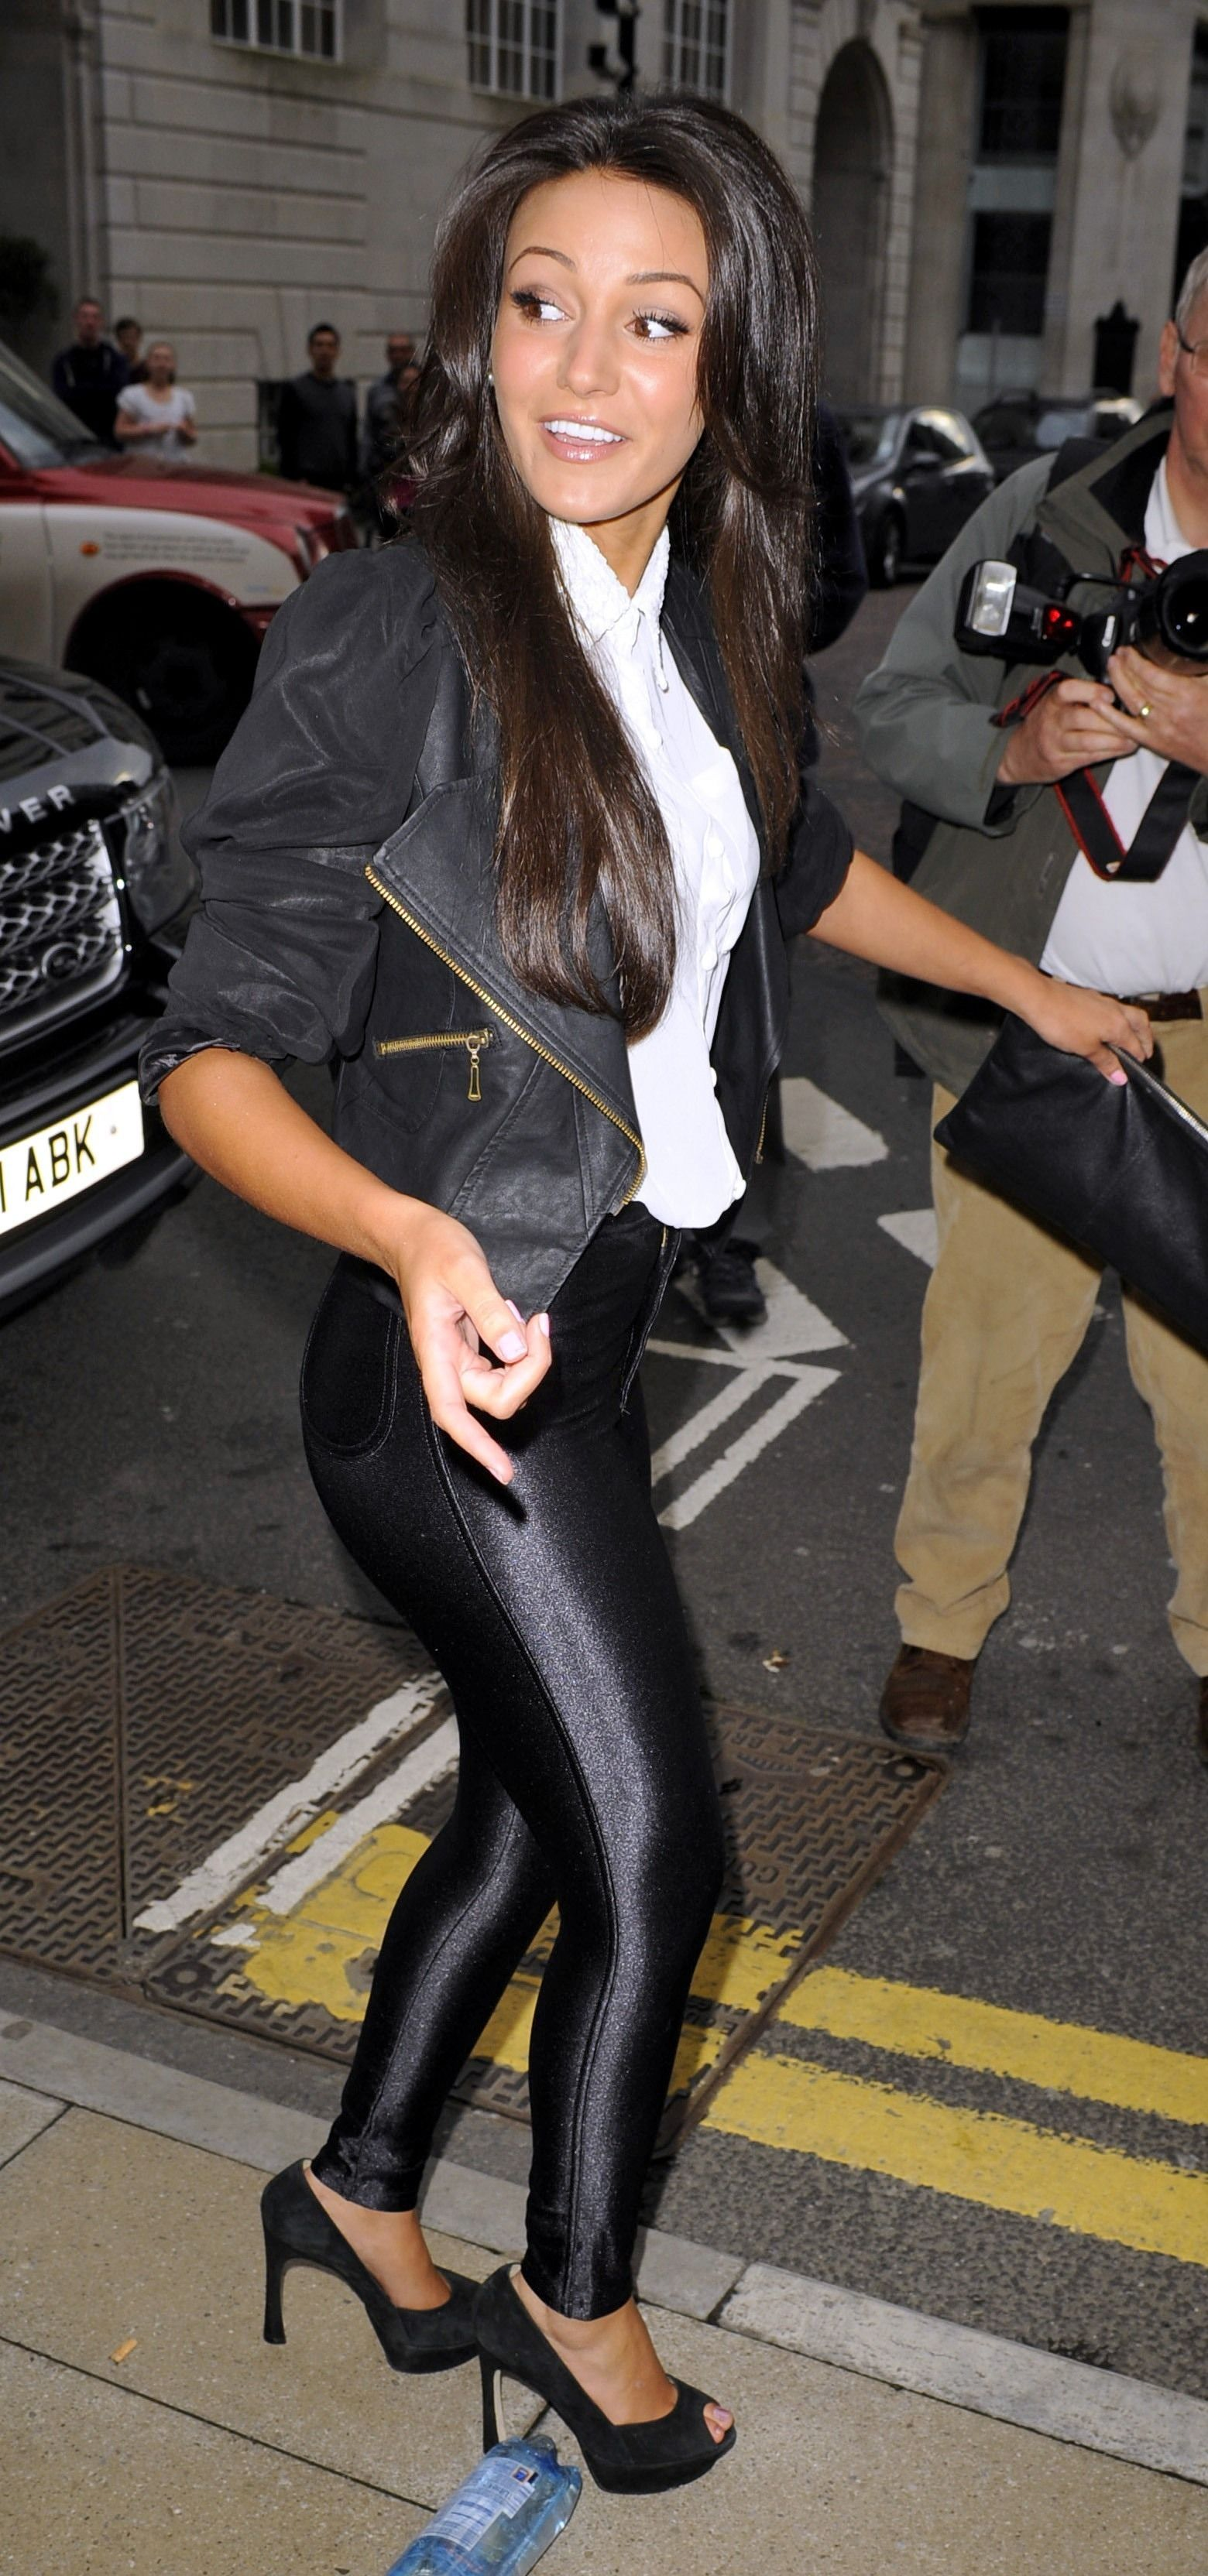 ebfe72fa850b3 michelle-keegan-at-the-inside-soap-awards-launch-in-london-02 ...